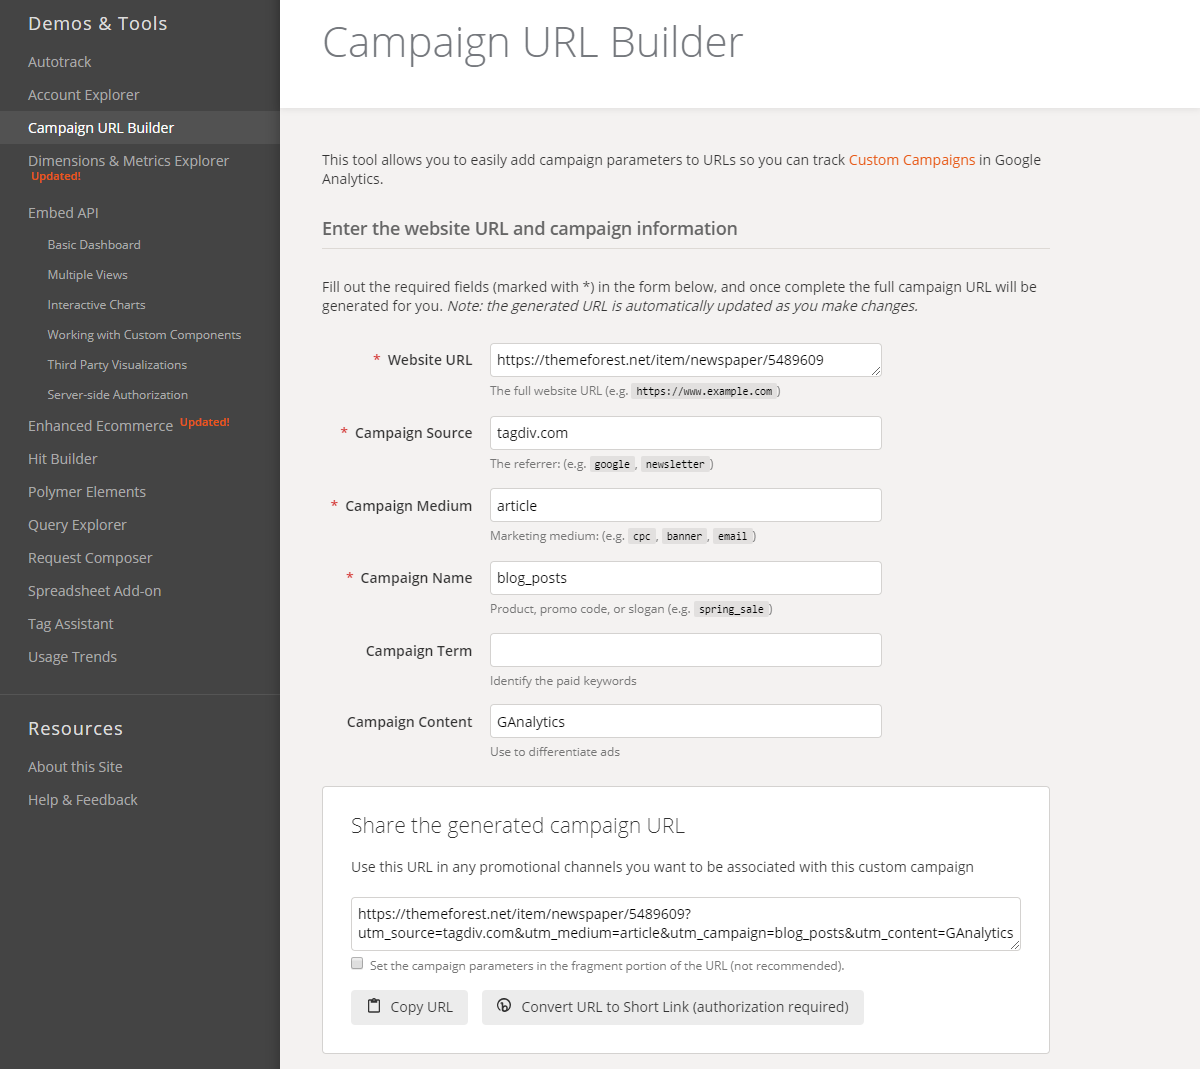 Analytics Campaign URL Builder: How to create a custom UTM Parameters